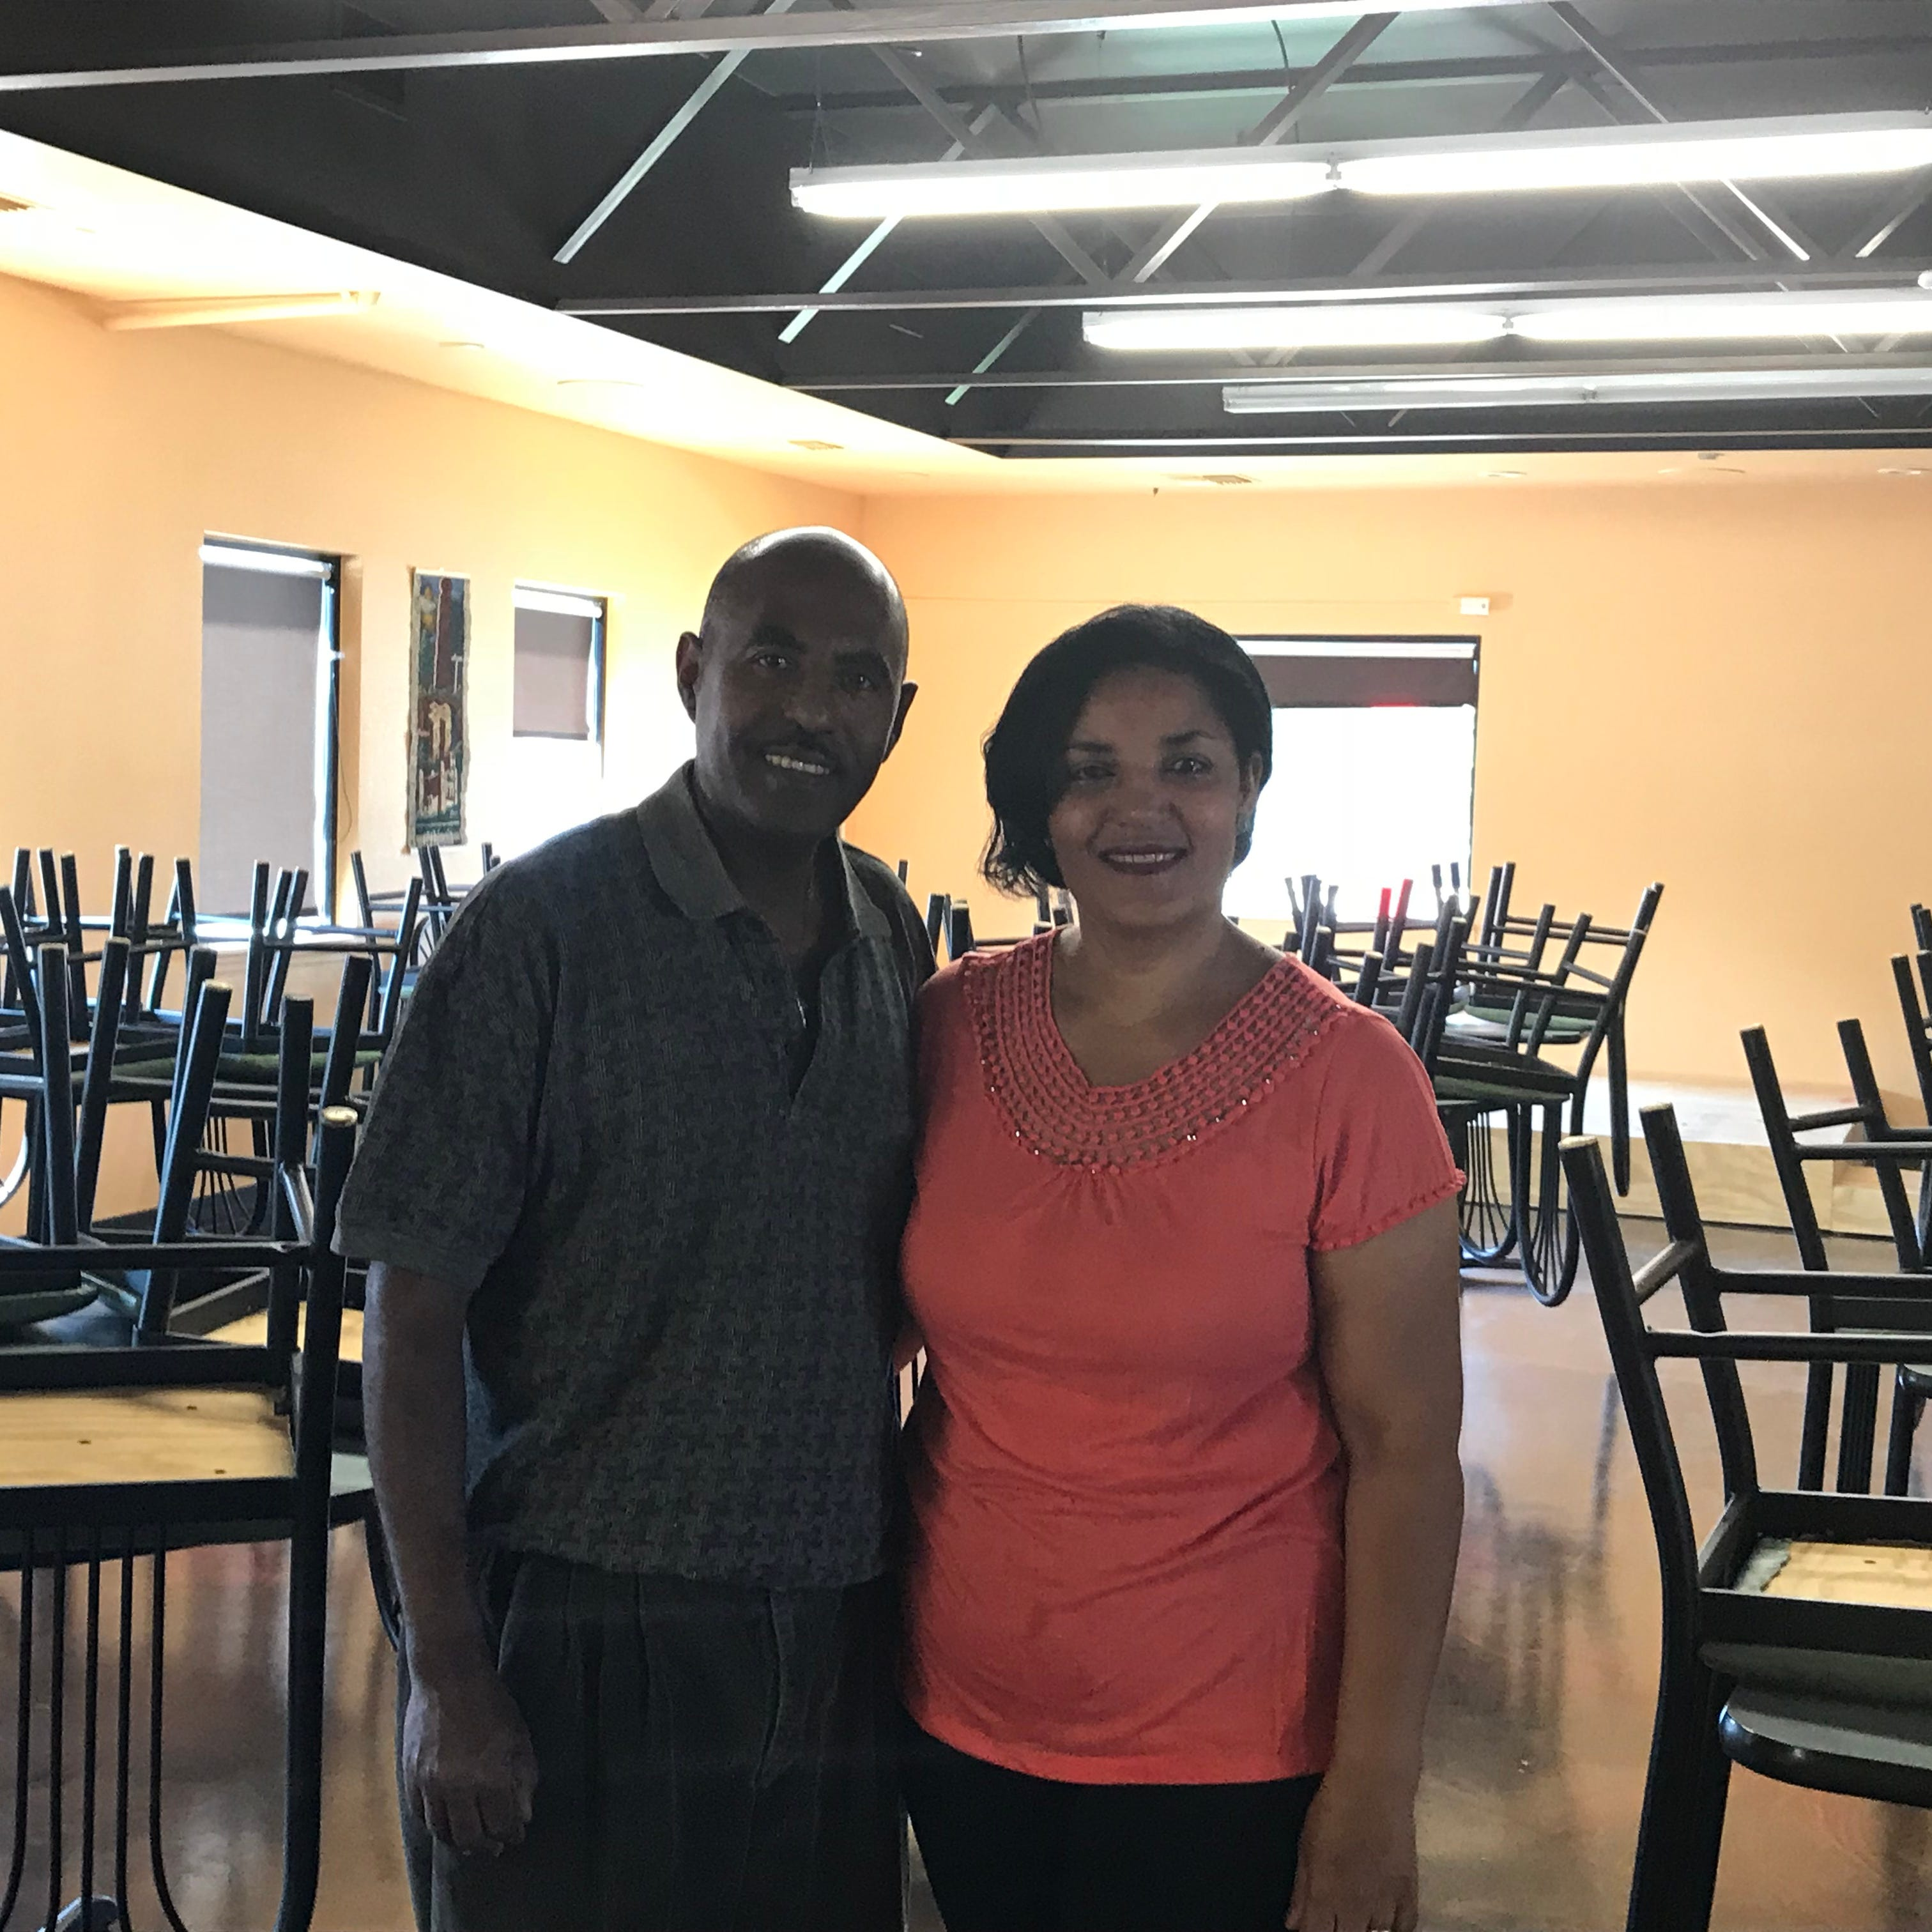 Lalibela Restaurant to reopen this weekend, offering Ethiopian cuisine